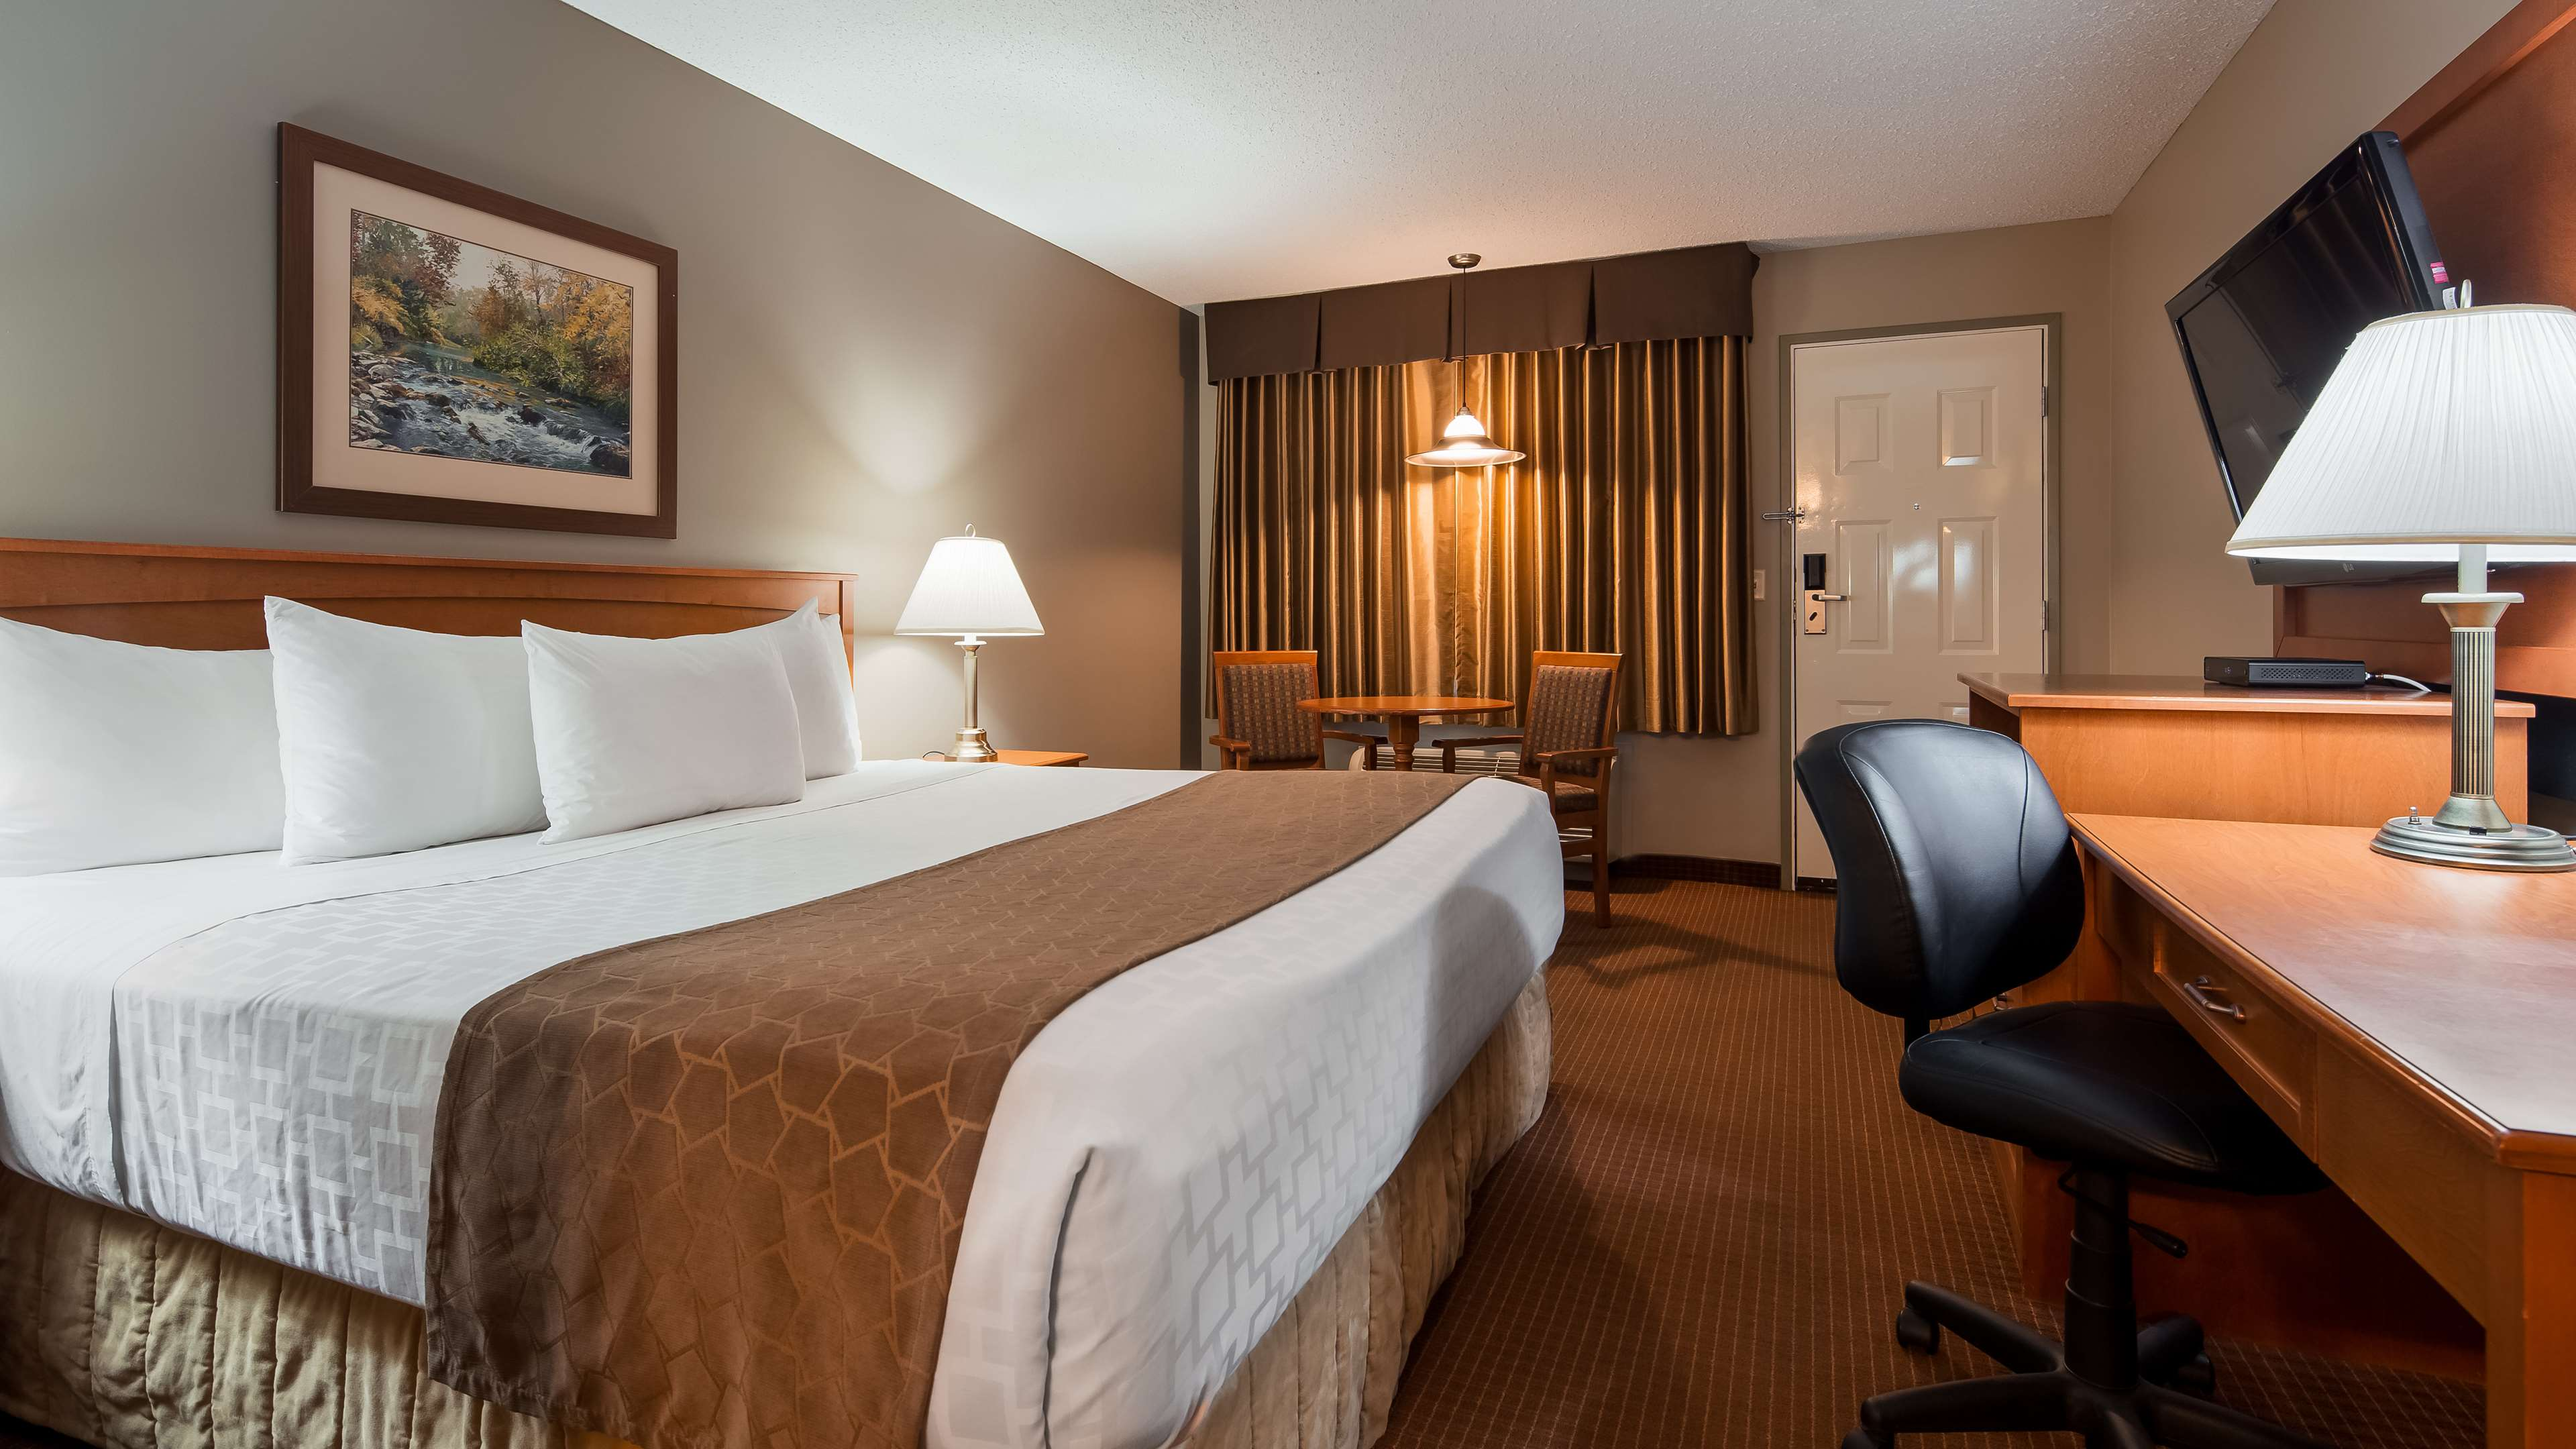 salmon arm chat rooms Whether your visit brings you for business or pleasure, we are ready to welcome you at the comfort inn & suites salmon arm.